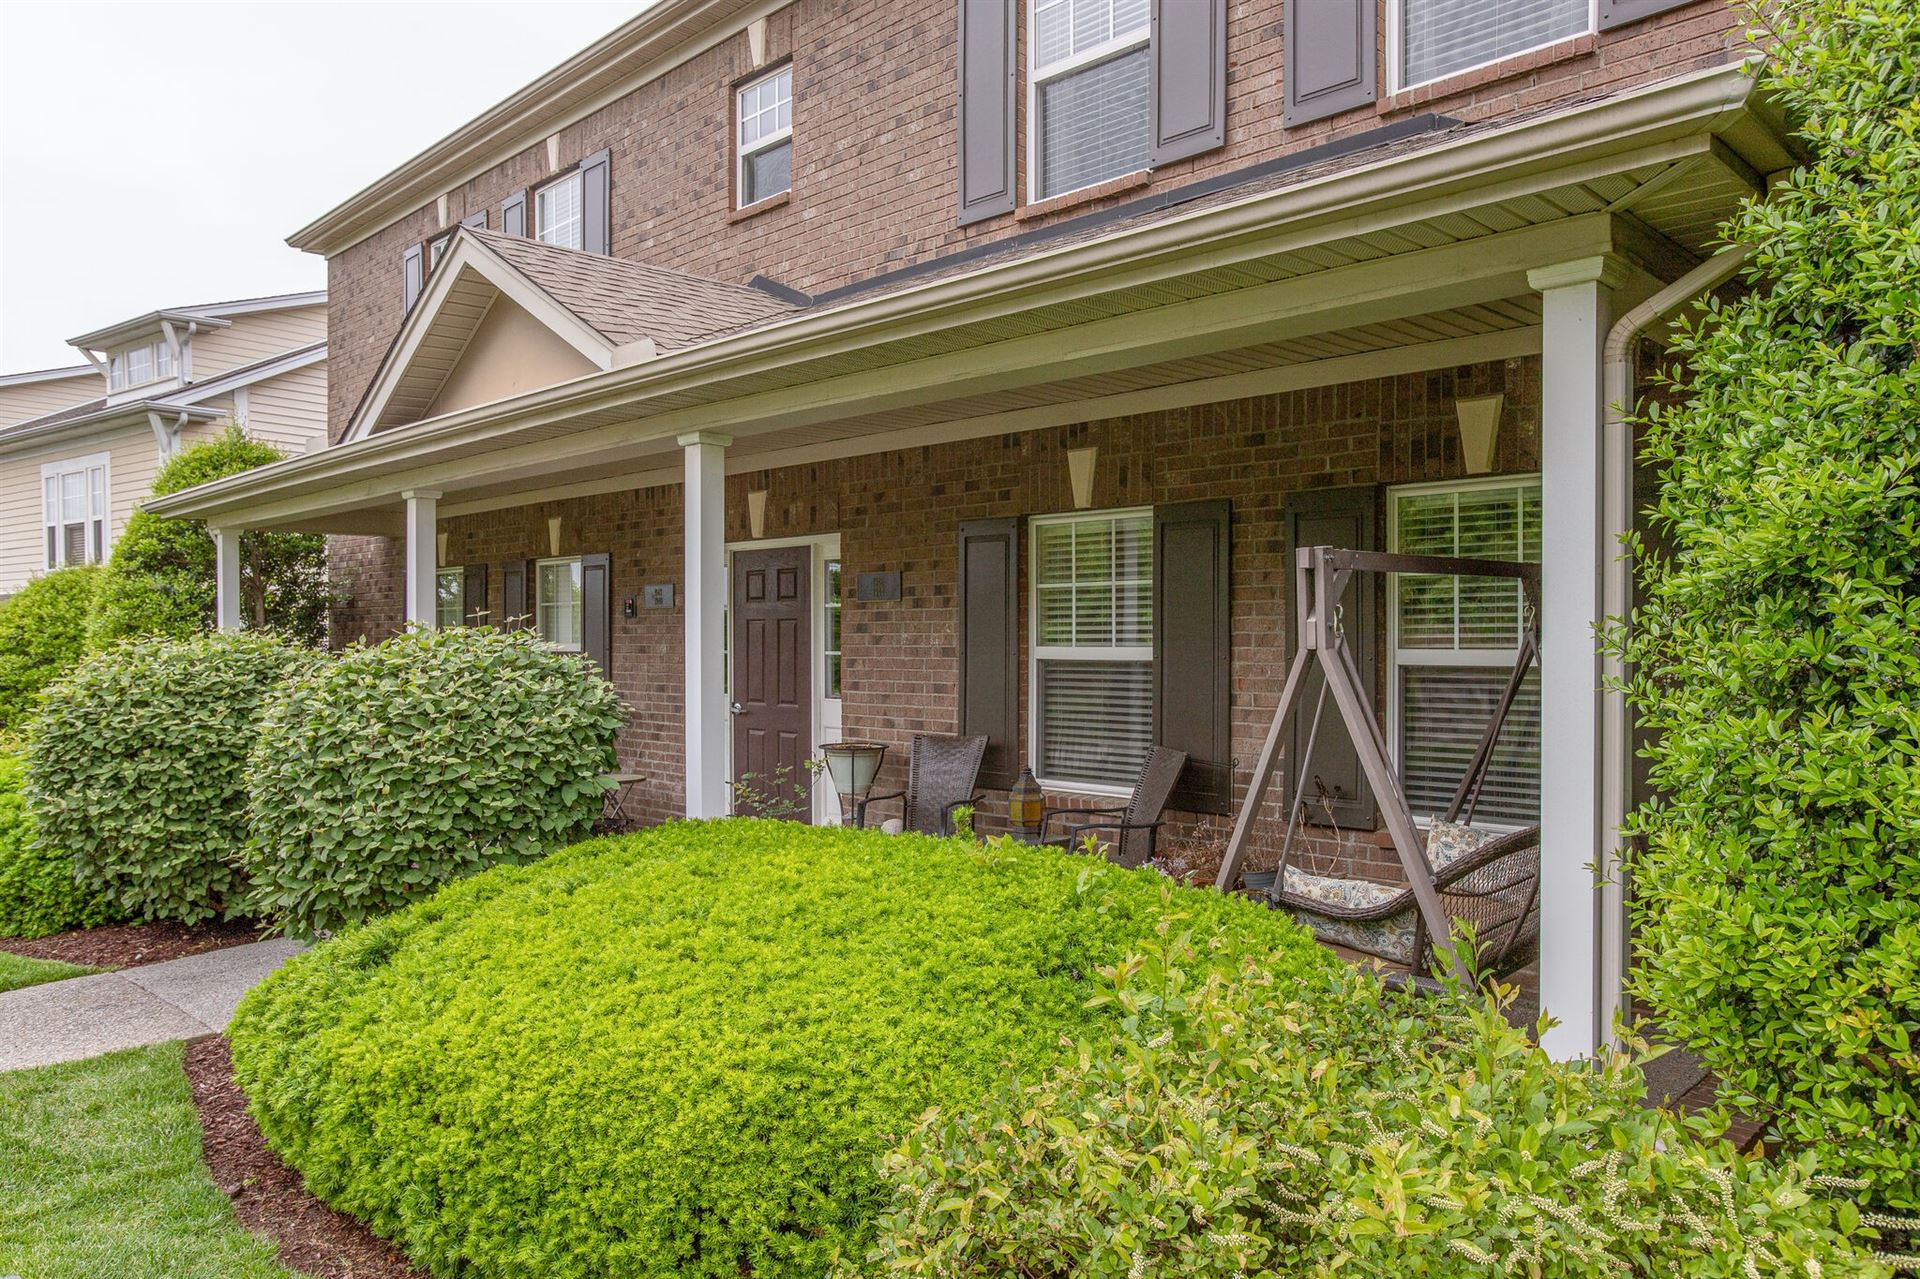 Photo of 1944 Turning Wheel Ln, Franklin, TN 37067 (MLS # 2253098)